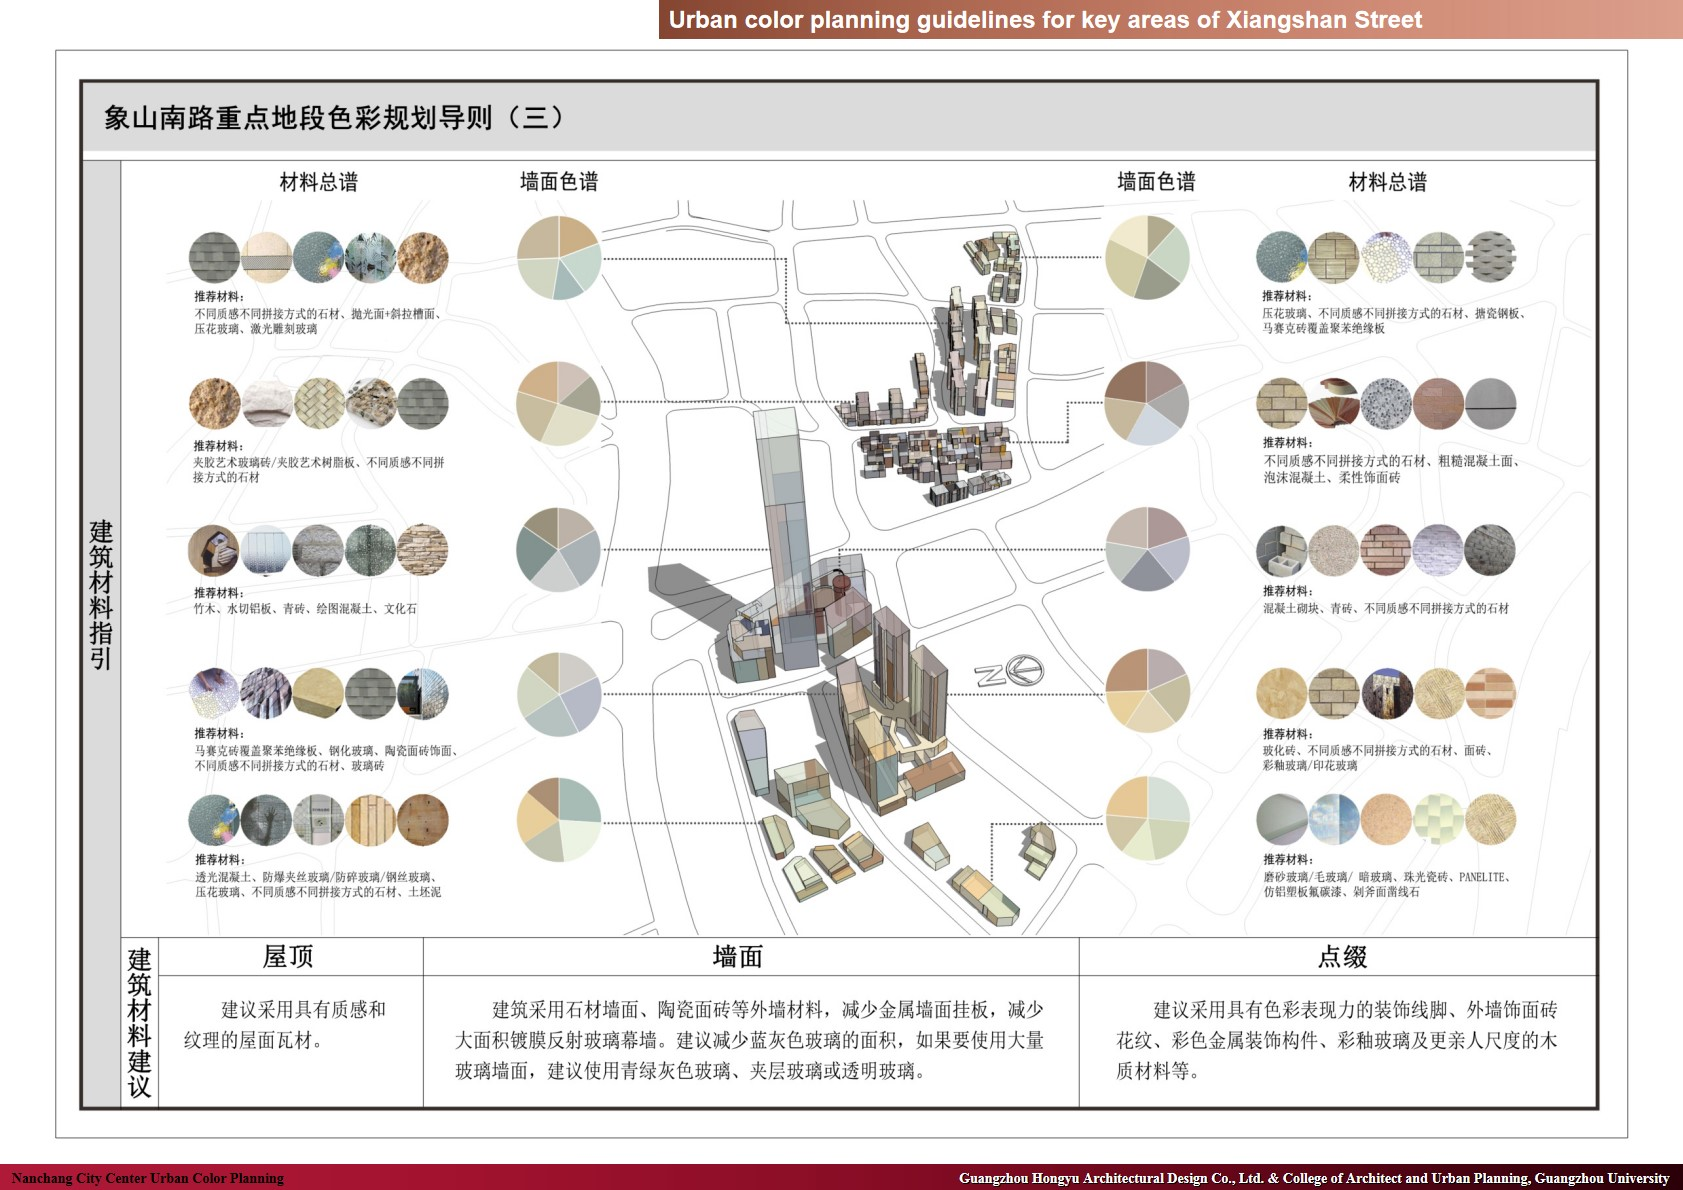 xample of color design for key section of Xiangshan street-1 Guangzhou Hongyu Architectural Design Co., Ltd. & College of Architect and Urban Planning, Guangzhou University}